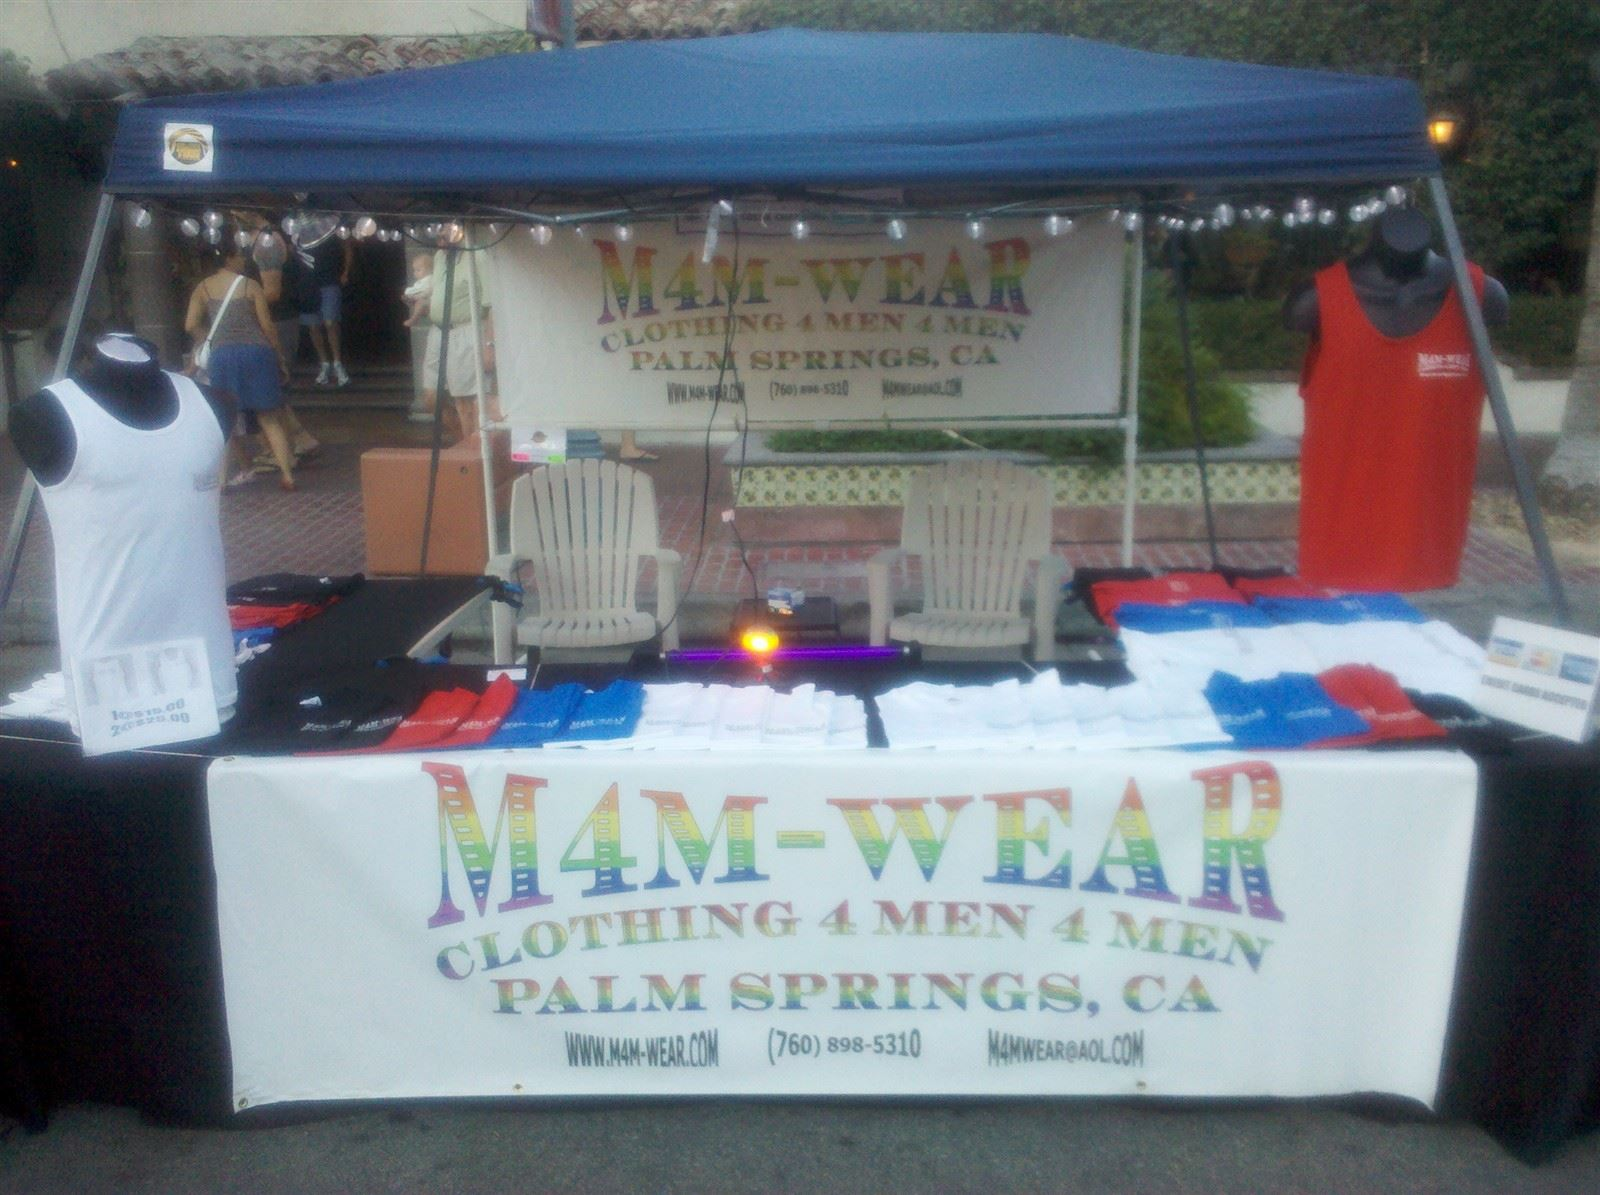 M4M-WEAR Booth at Palm Springs Village Fest